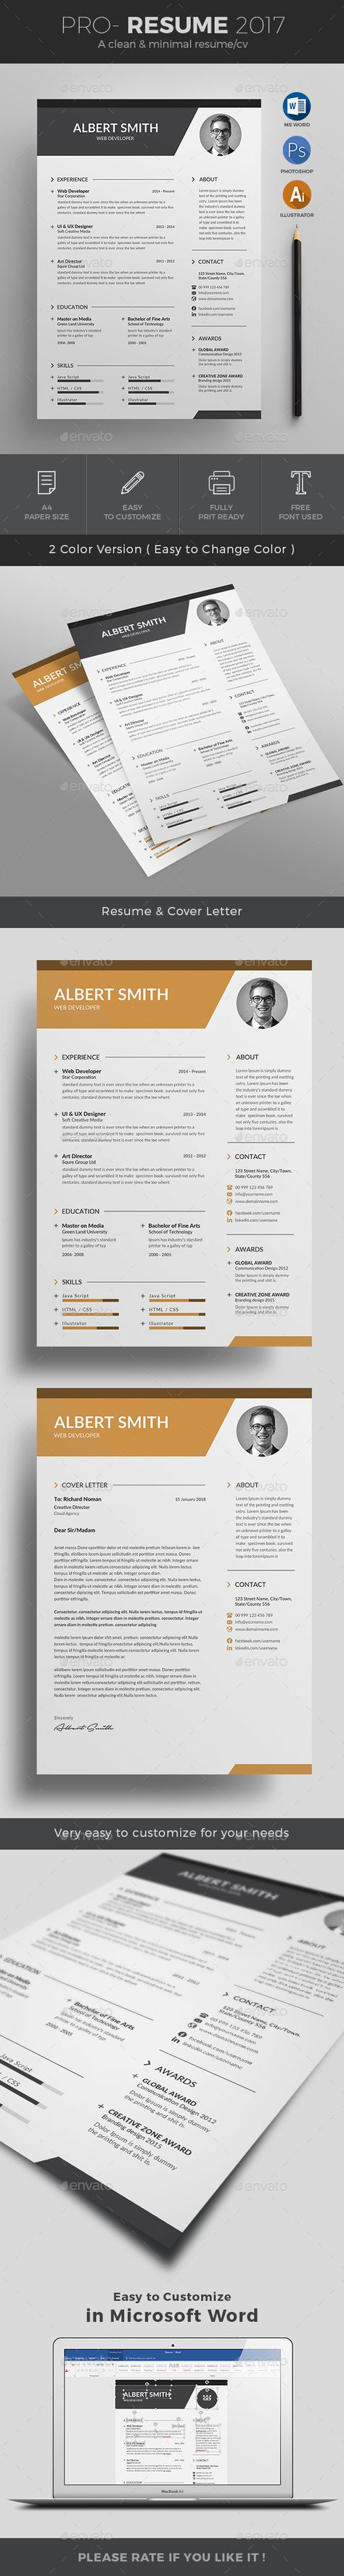 Cv resume template resume template 4 pack cv template resume templates on